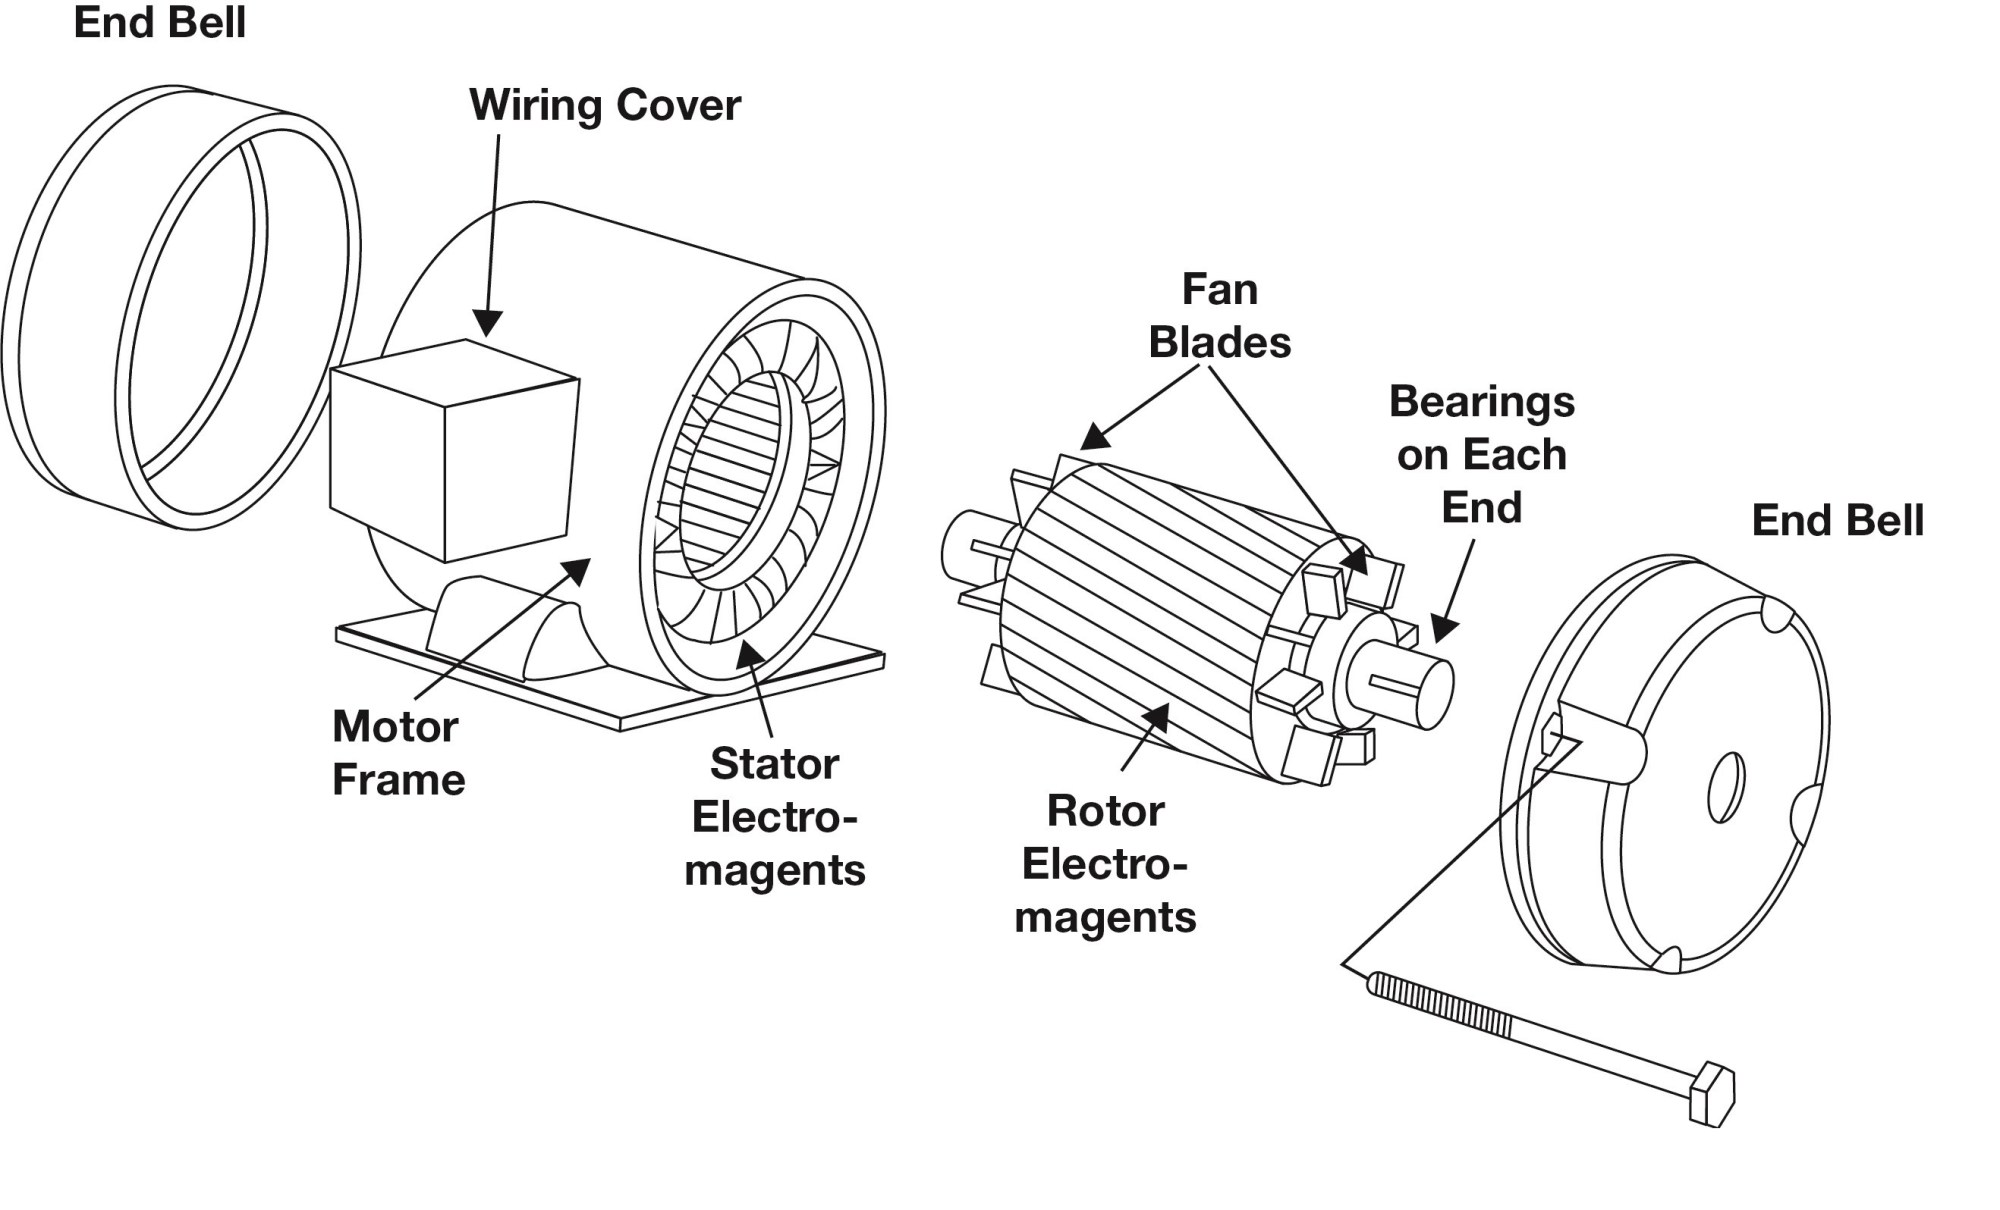 hight resolution of figure 1 internal view of a motor bearing